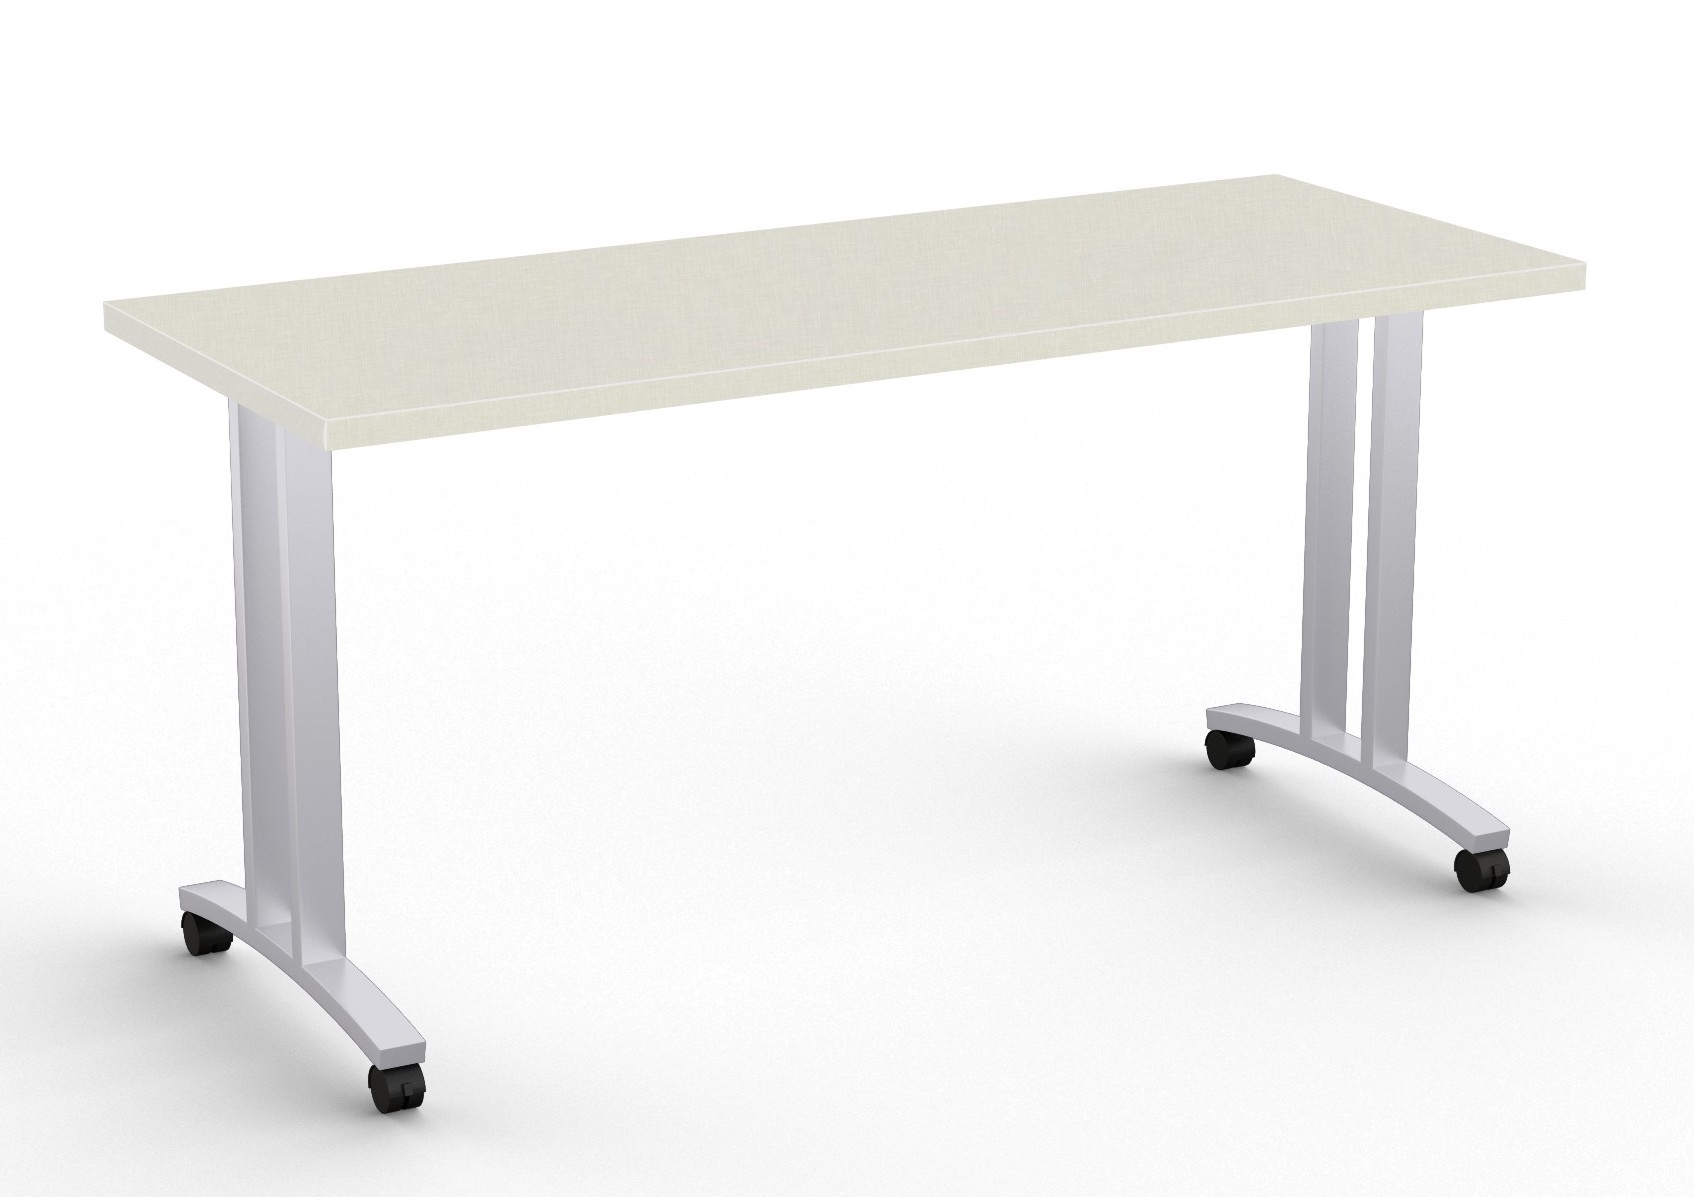 special-t structure t leg training table in canvas